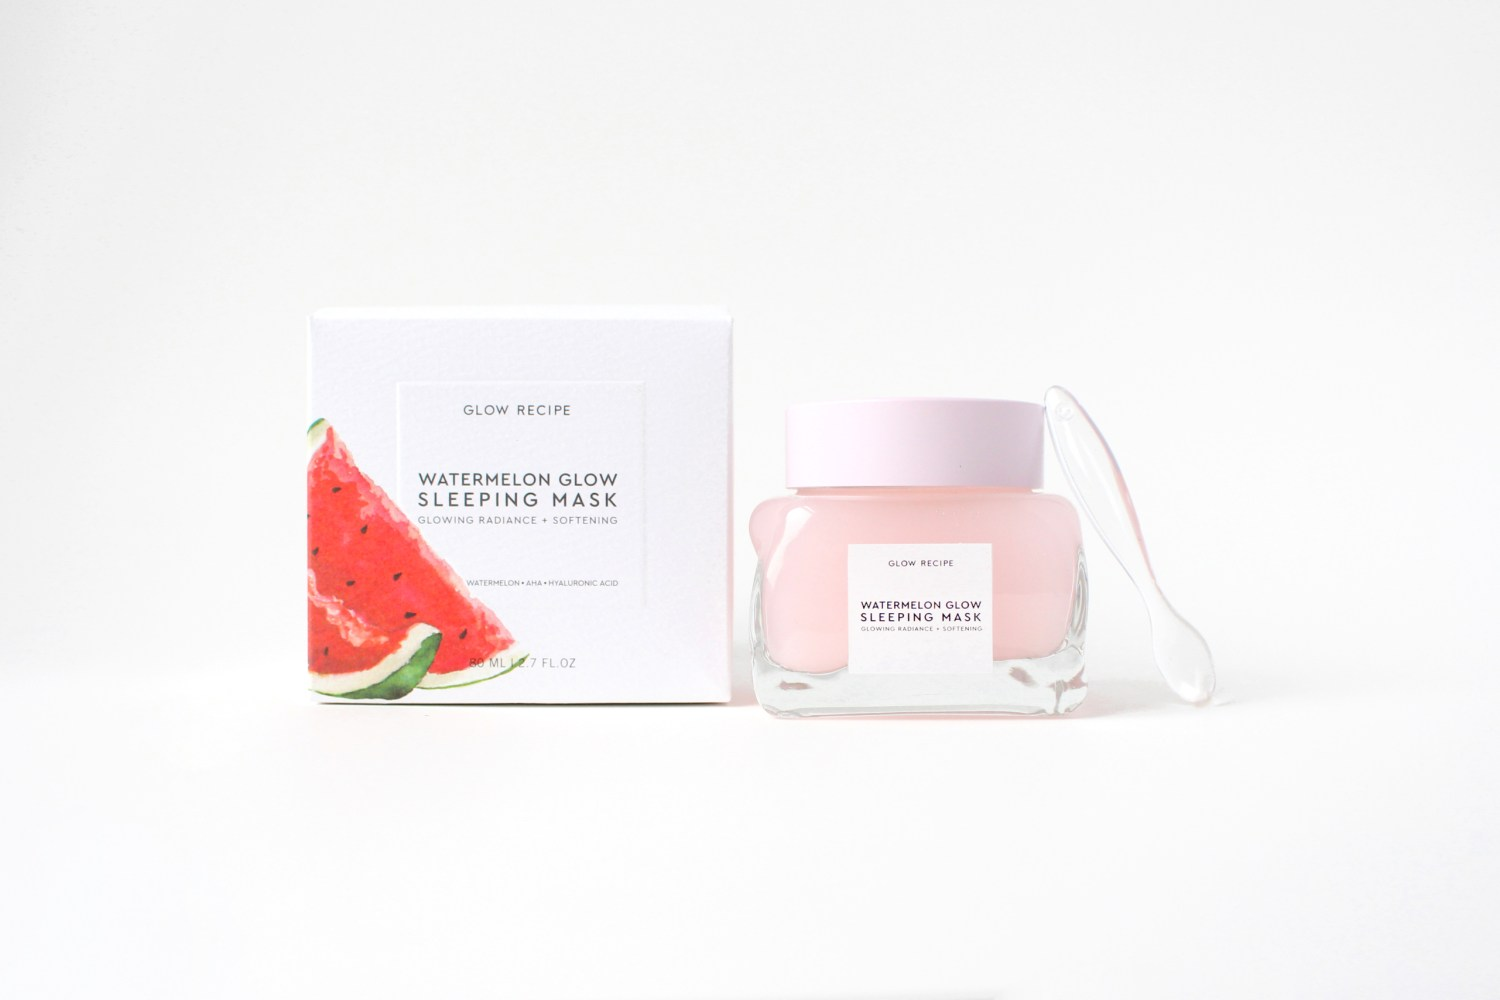 K-Beauty Skin Care Products Feature Holistic And Fresh Ingredients For All skin types